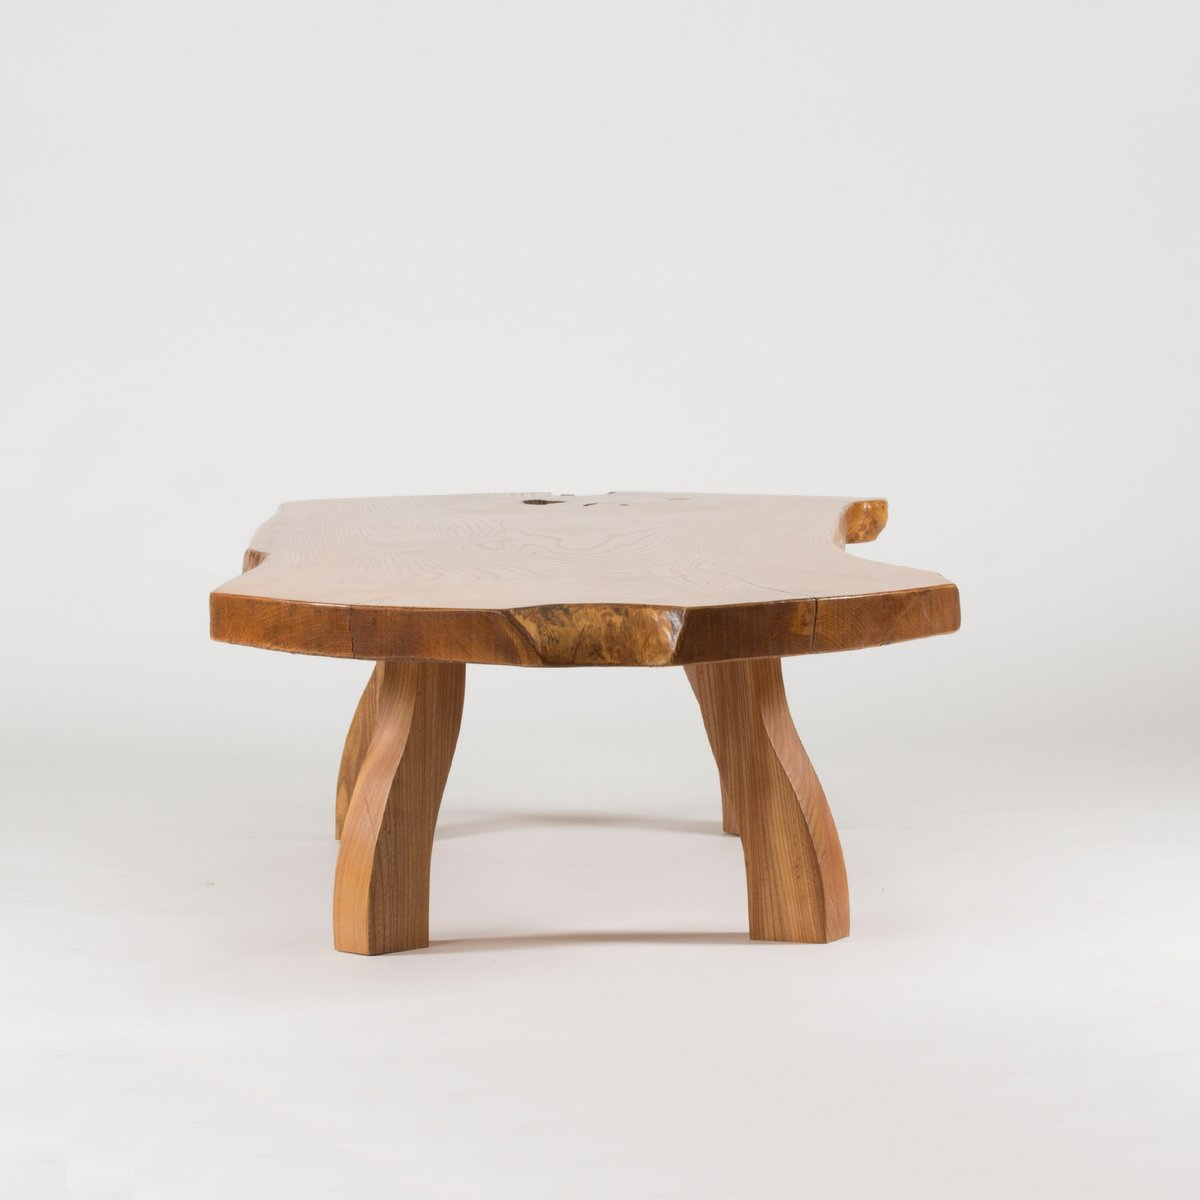 Pine Coffee Table Uk: Pine Slab Coffee Table By C.A. Beijbom, 1960s For Sale At